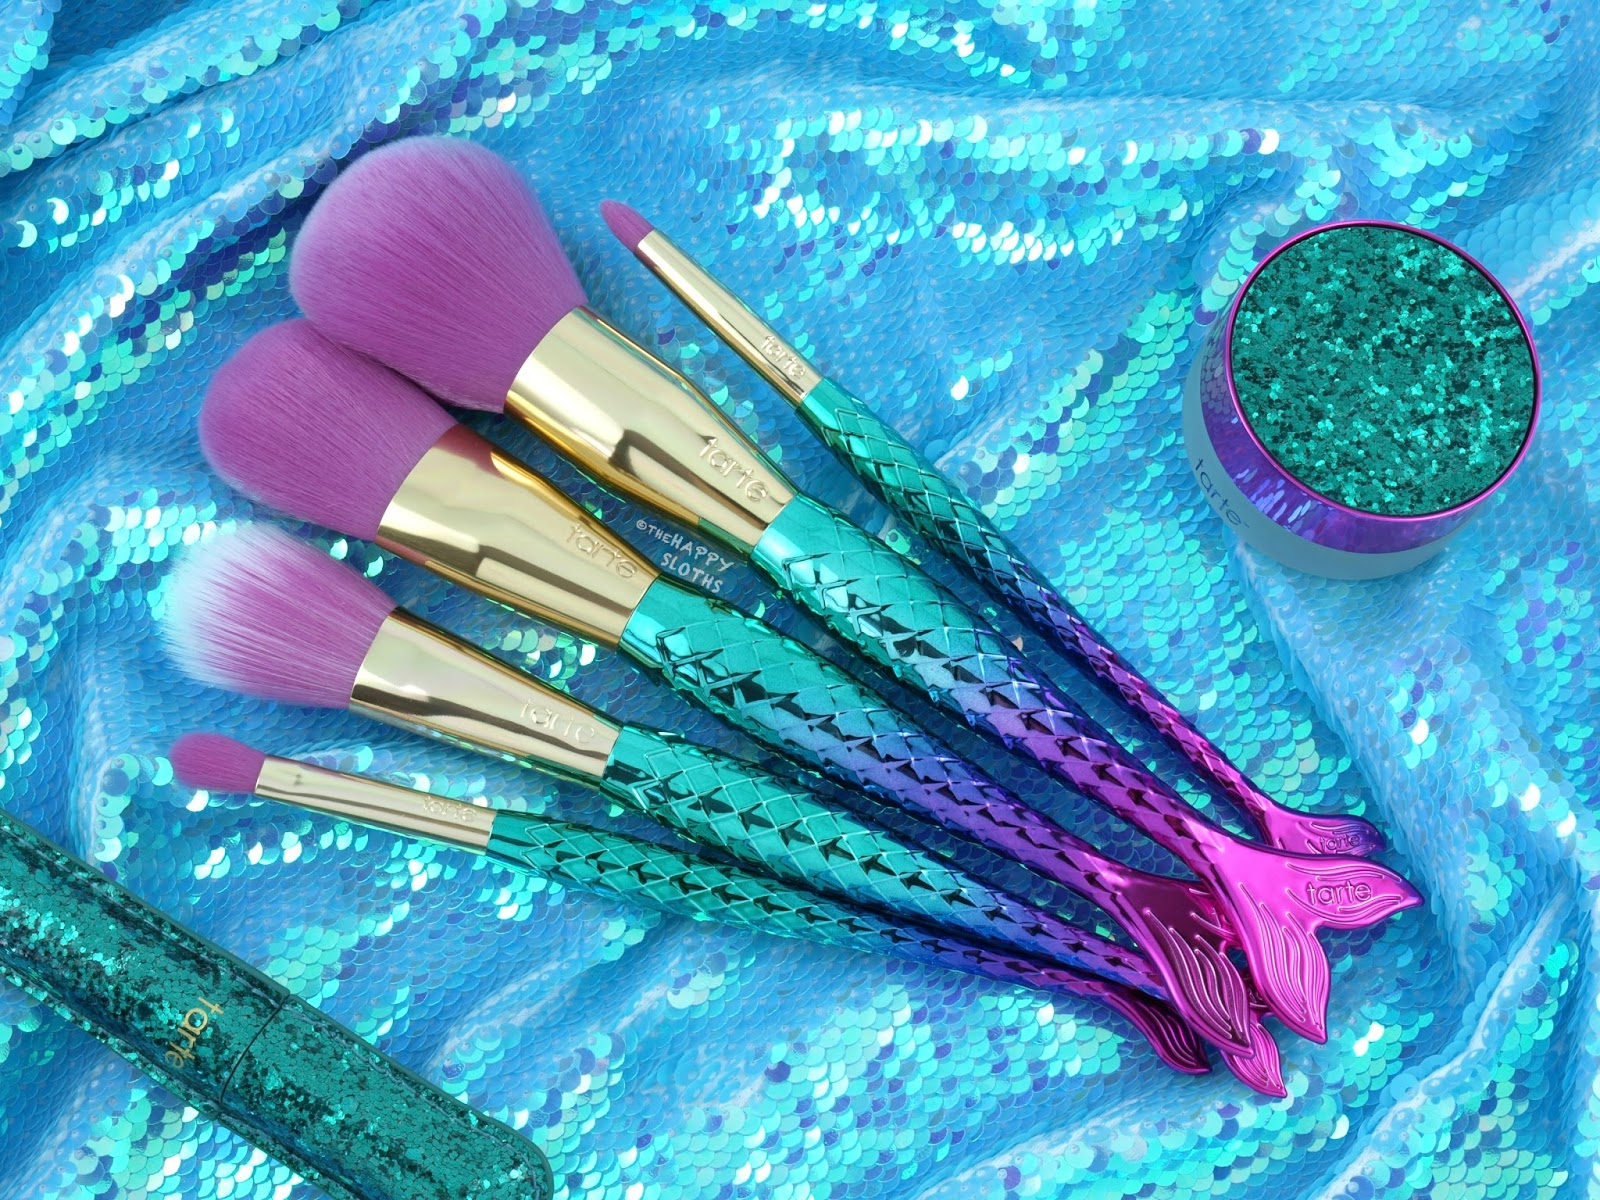 Tarte Mermaid Collection | Minutes to Mermaid Brush Set: Review